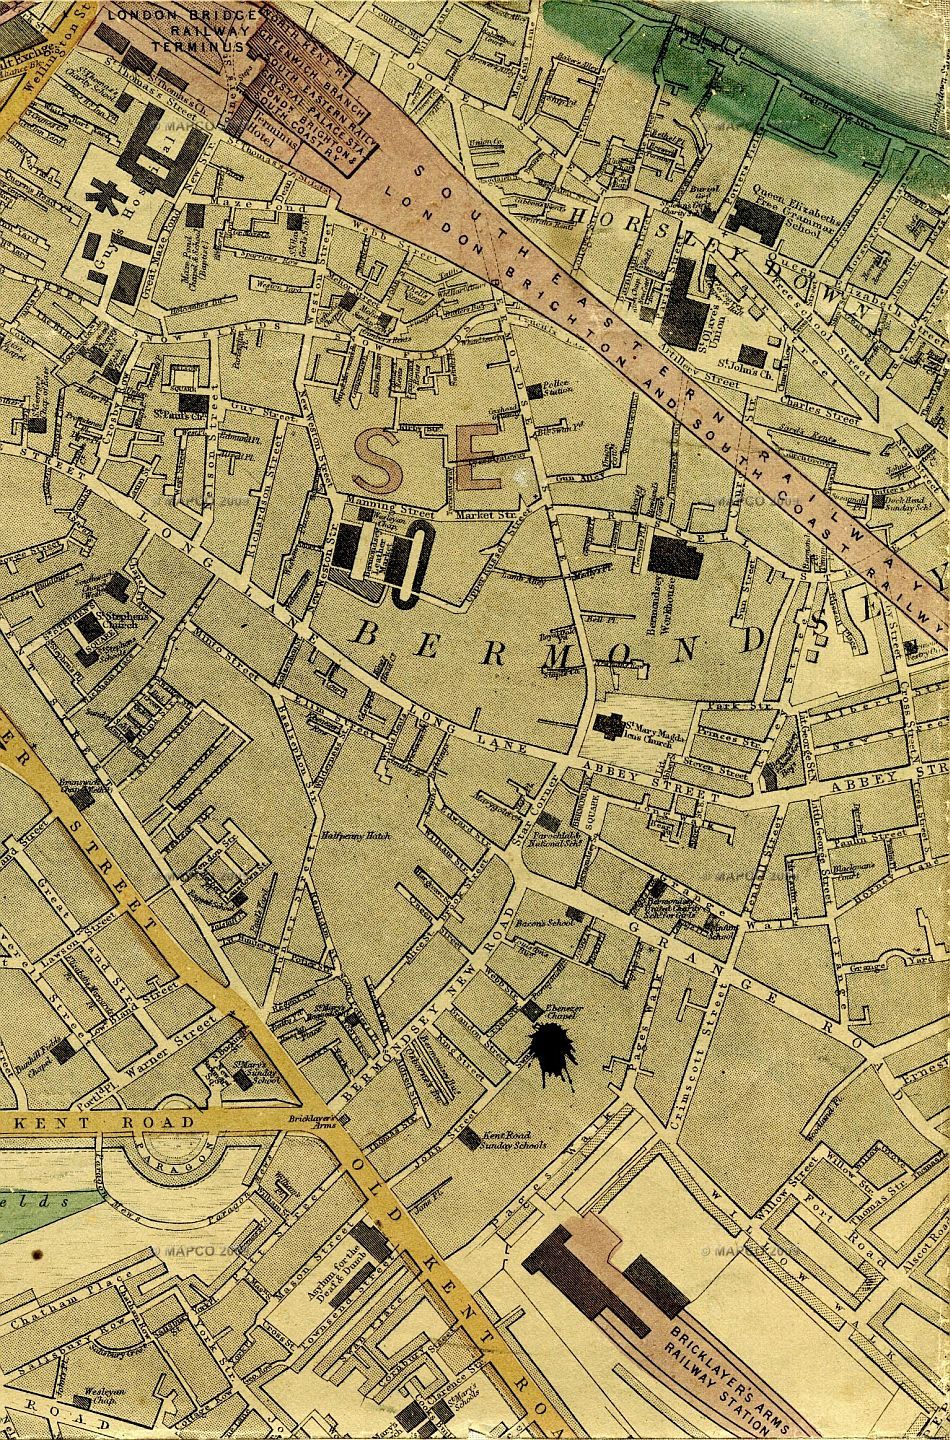 Old Street London Map.Map Of London 1868 By Edward Weller F R G S